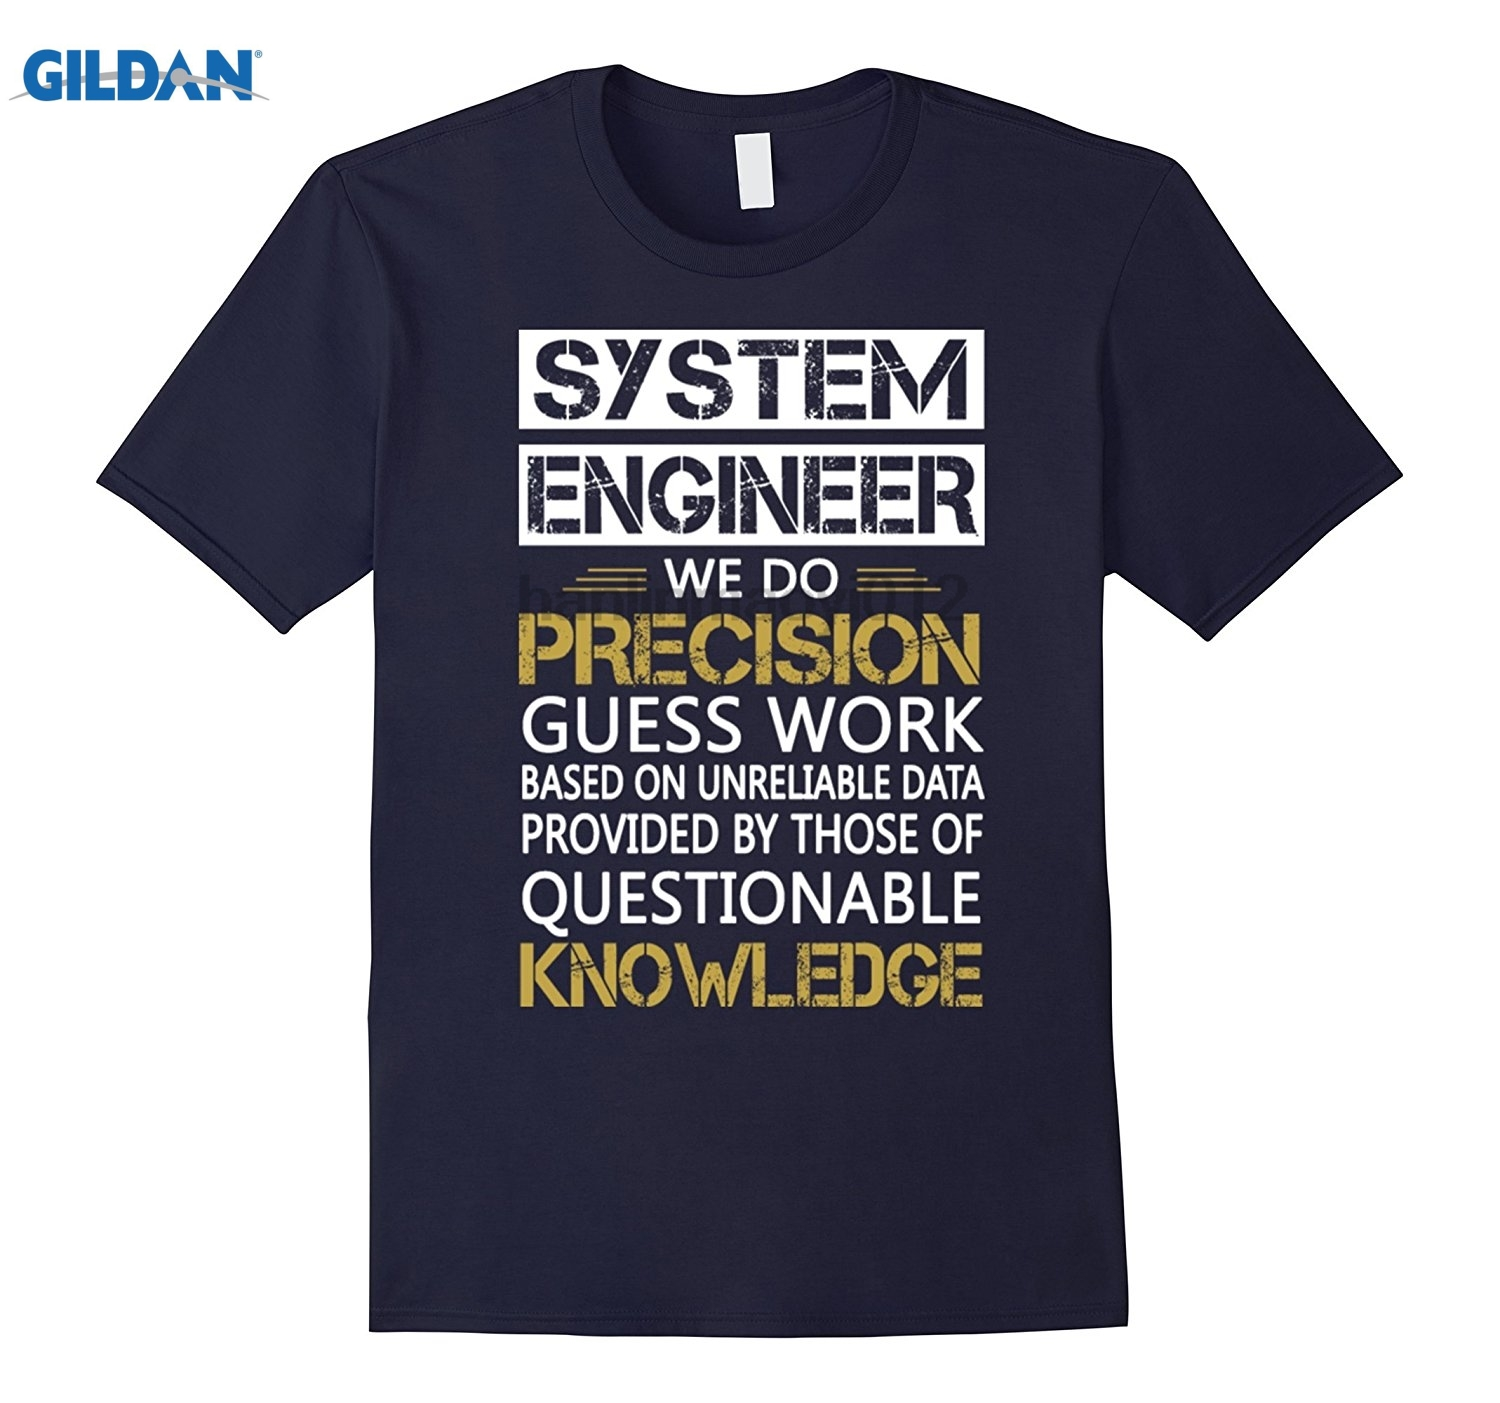 GILDAN System Engineer We Do Precision Work Knowledge Mothers Day Ms. T-shirt